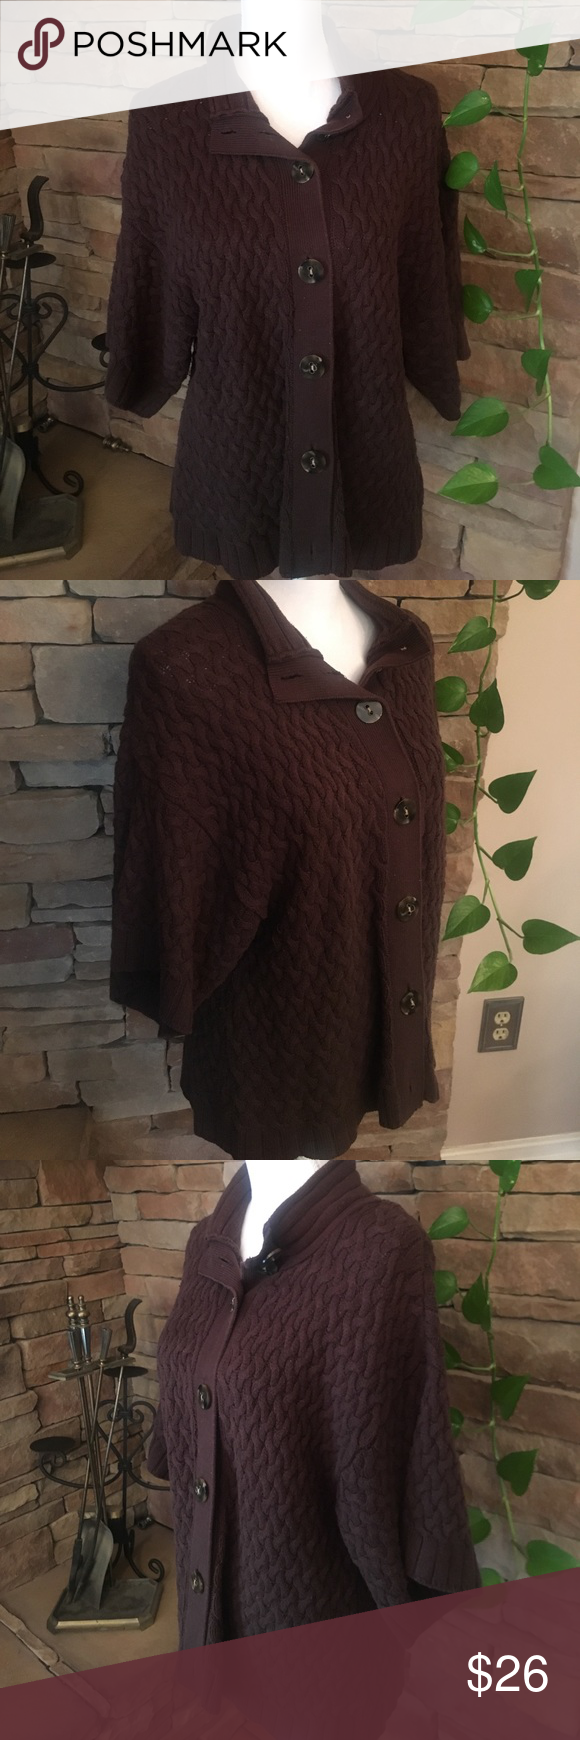 Chocolate Brown Cardigan Sweater | Chocolate brown, Brown and ...